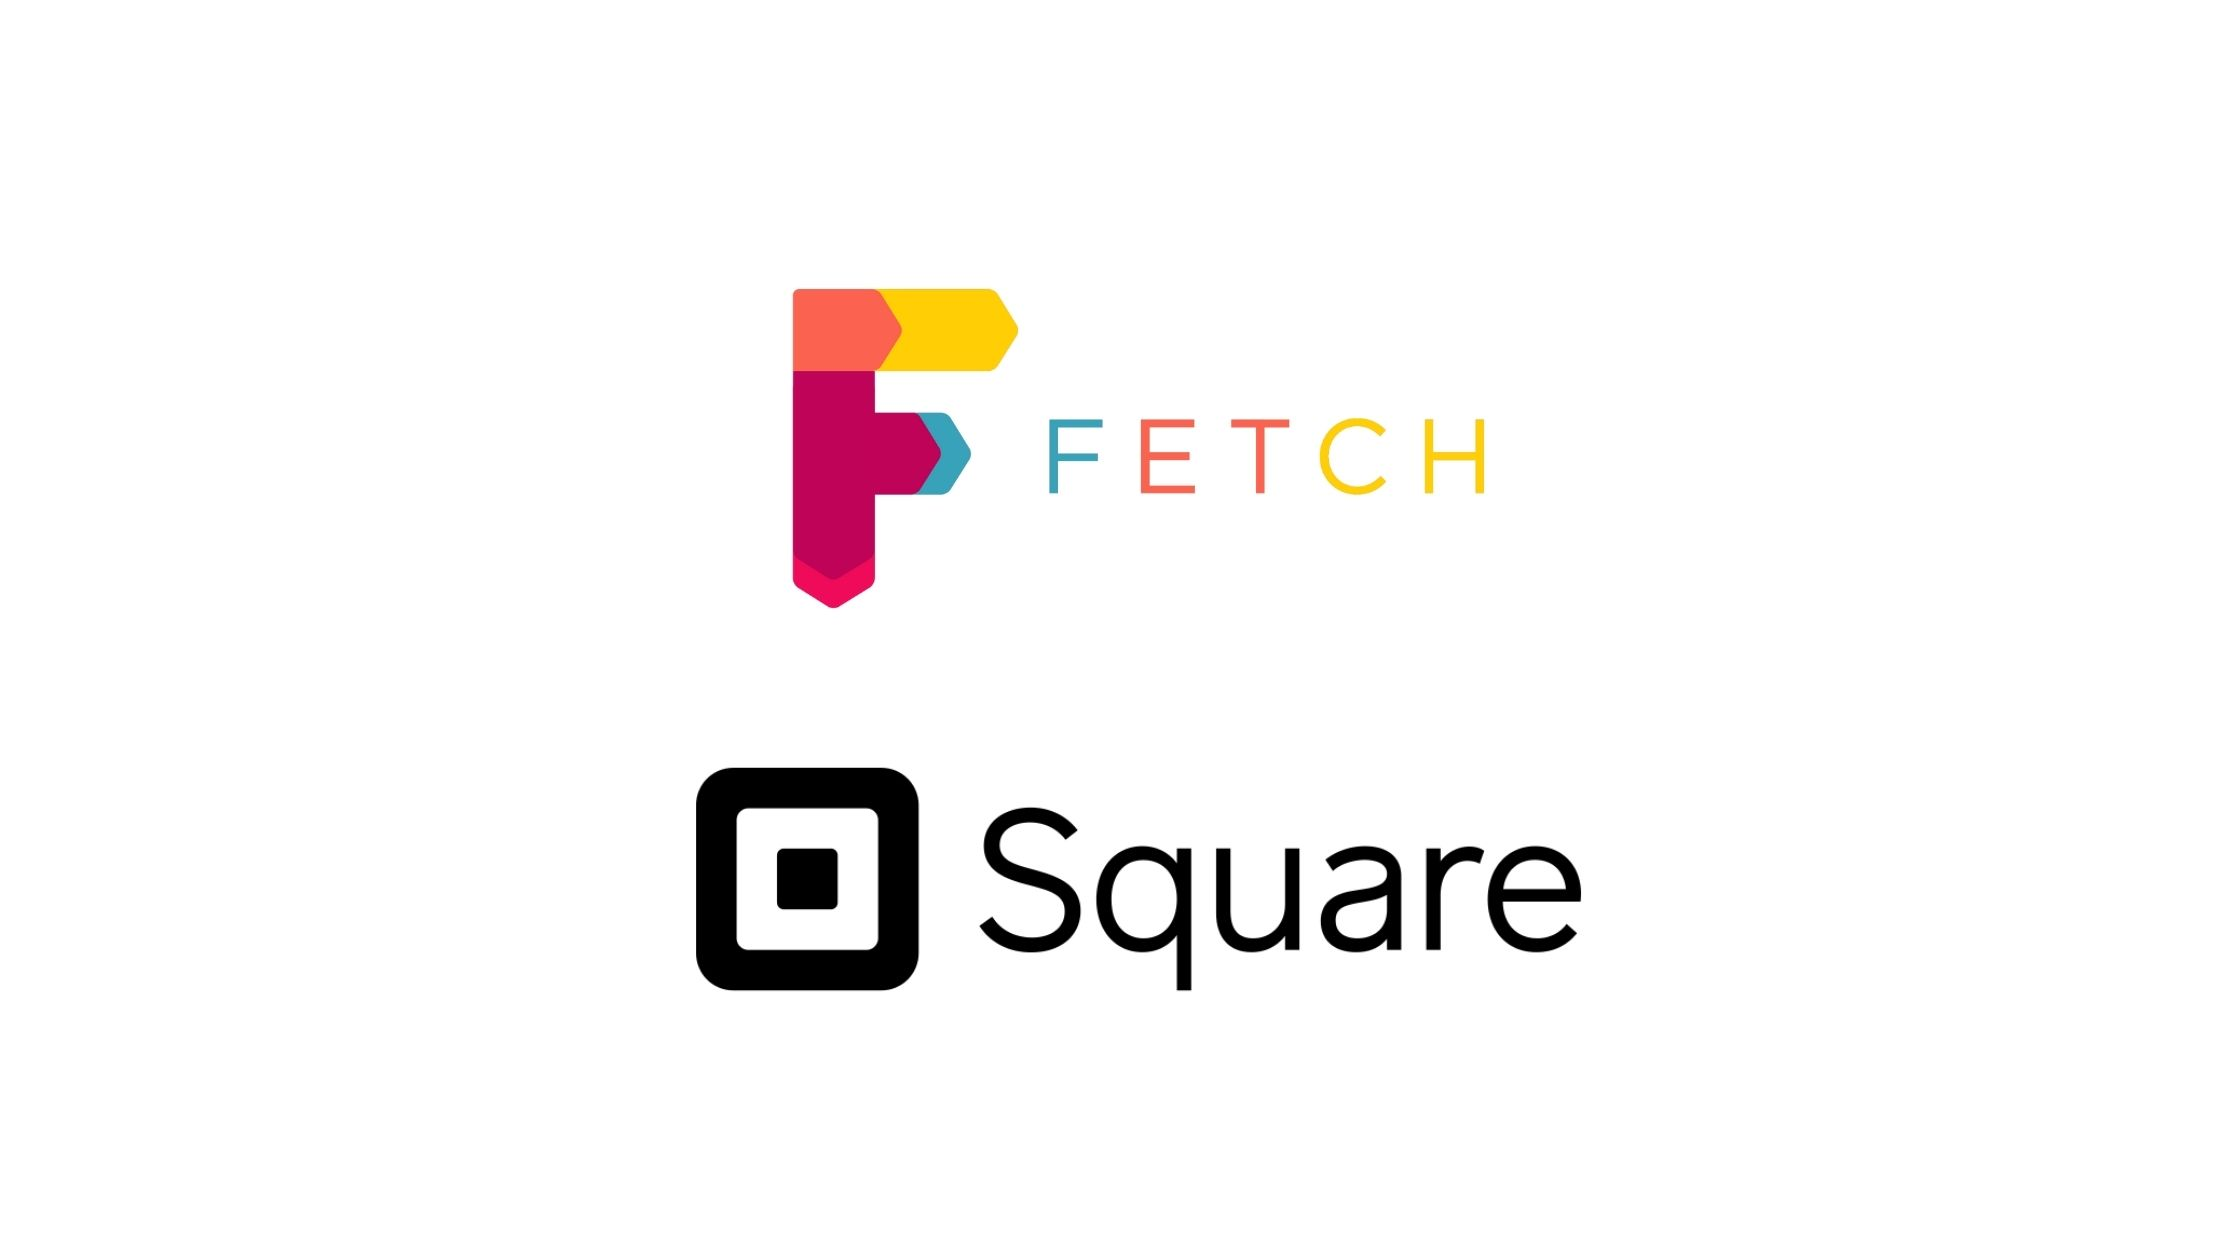 FETCH partners with Square